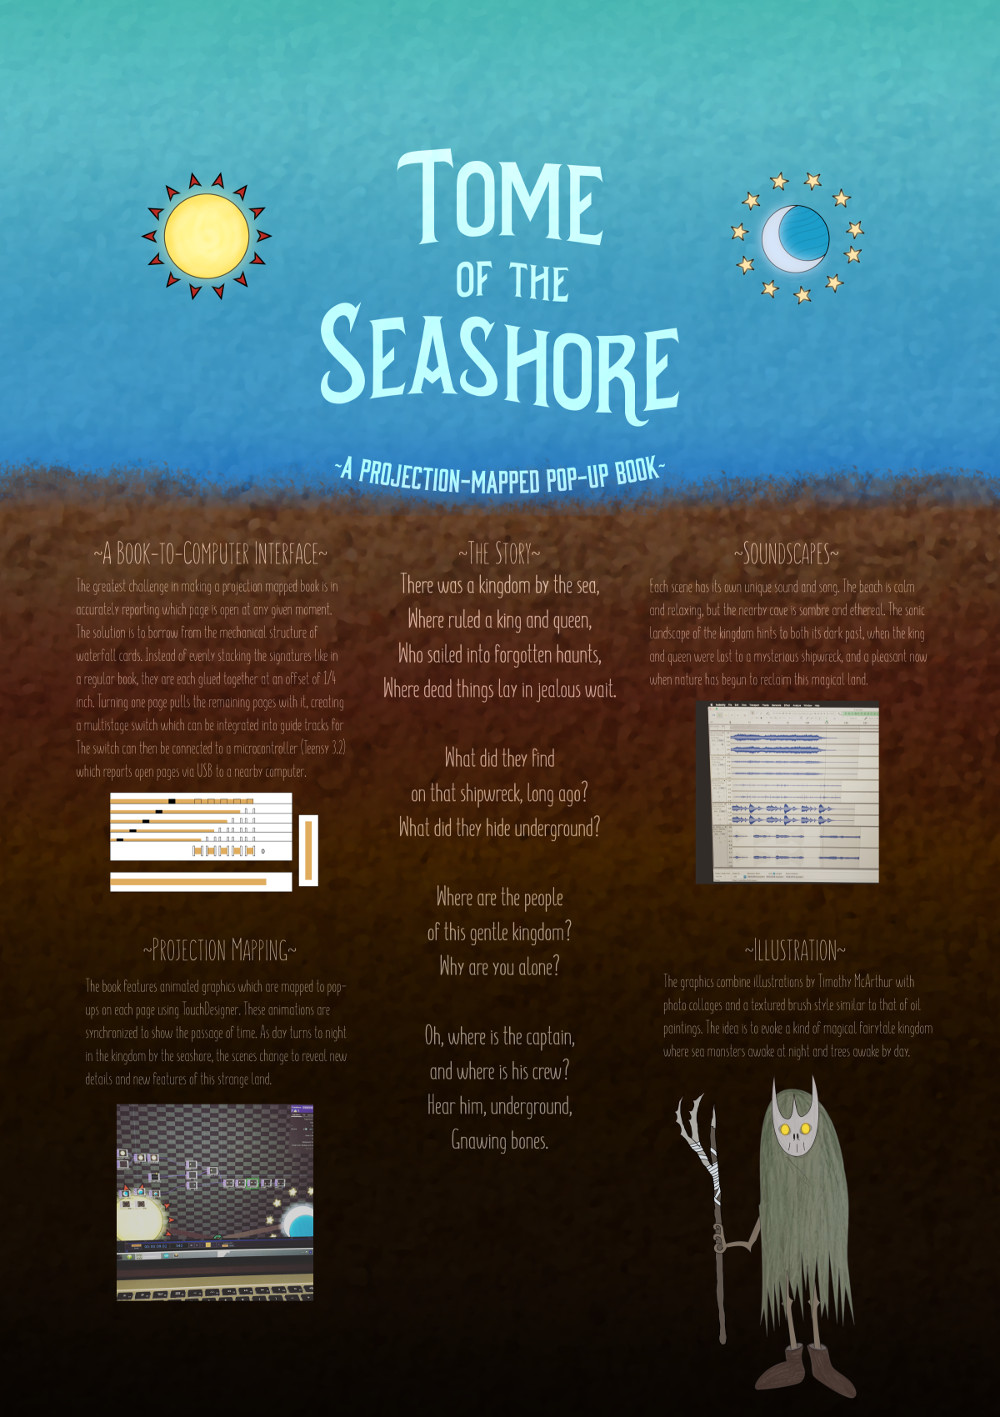 The poster design for  Tome of the Seashore .